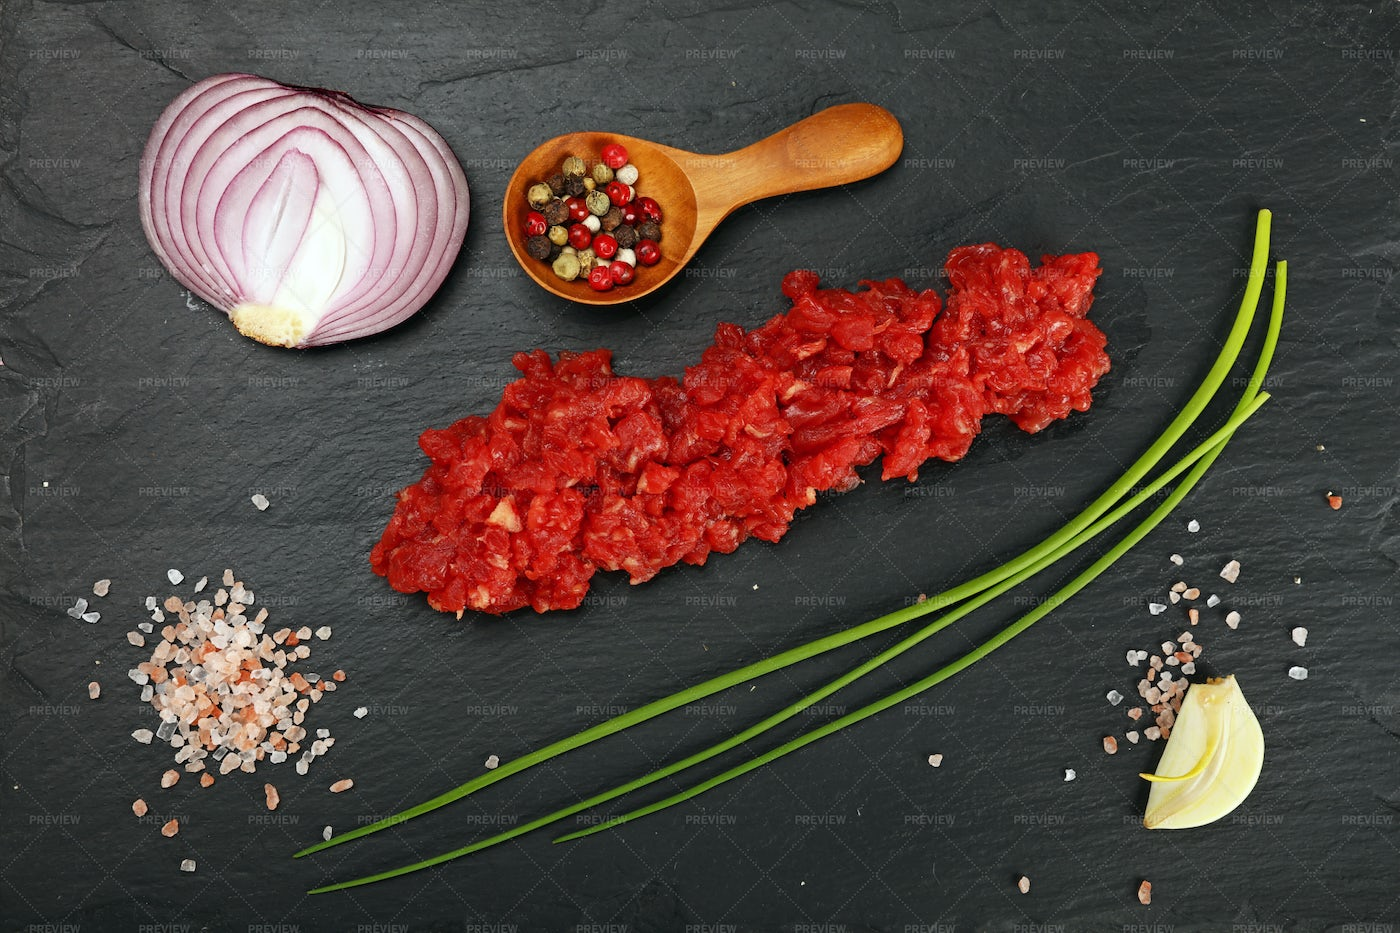 Minced Meat And Ingredients: Stock Photos